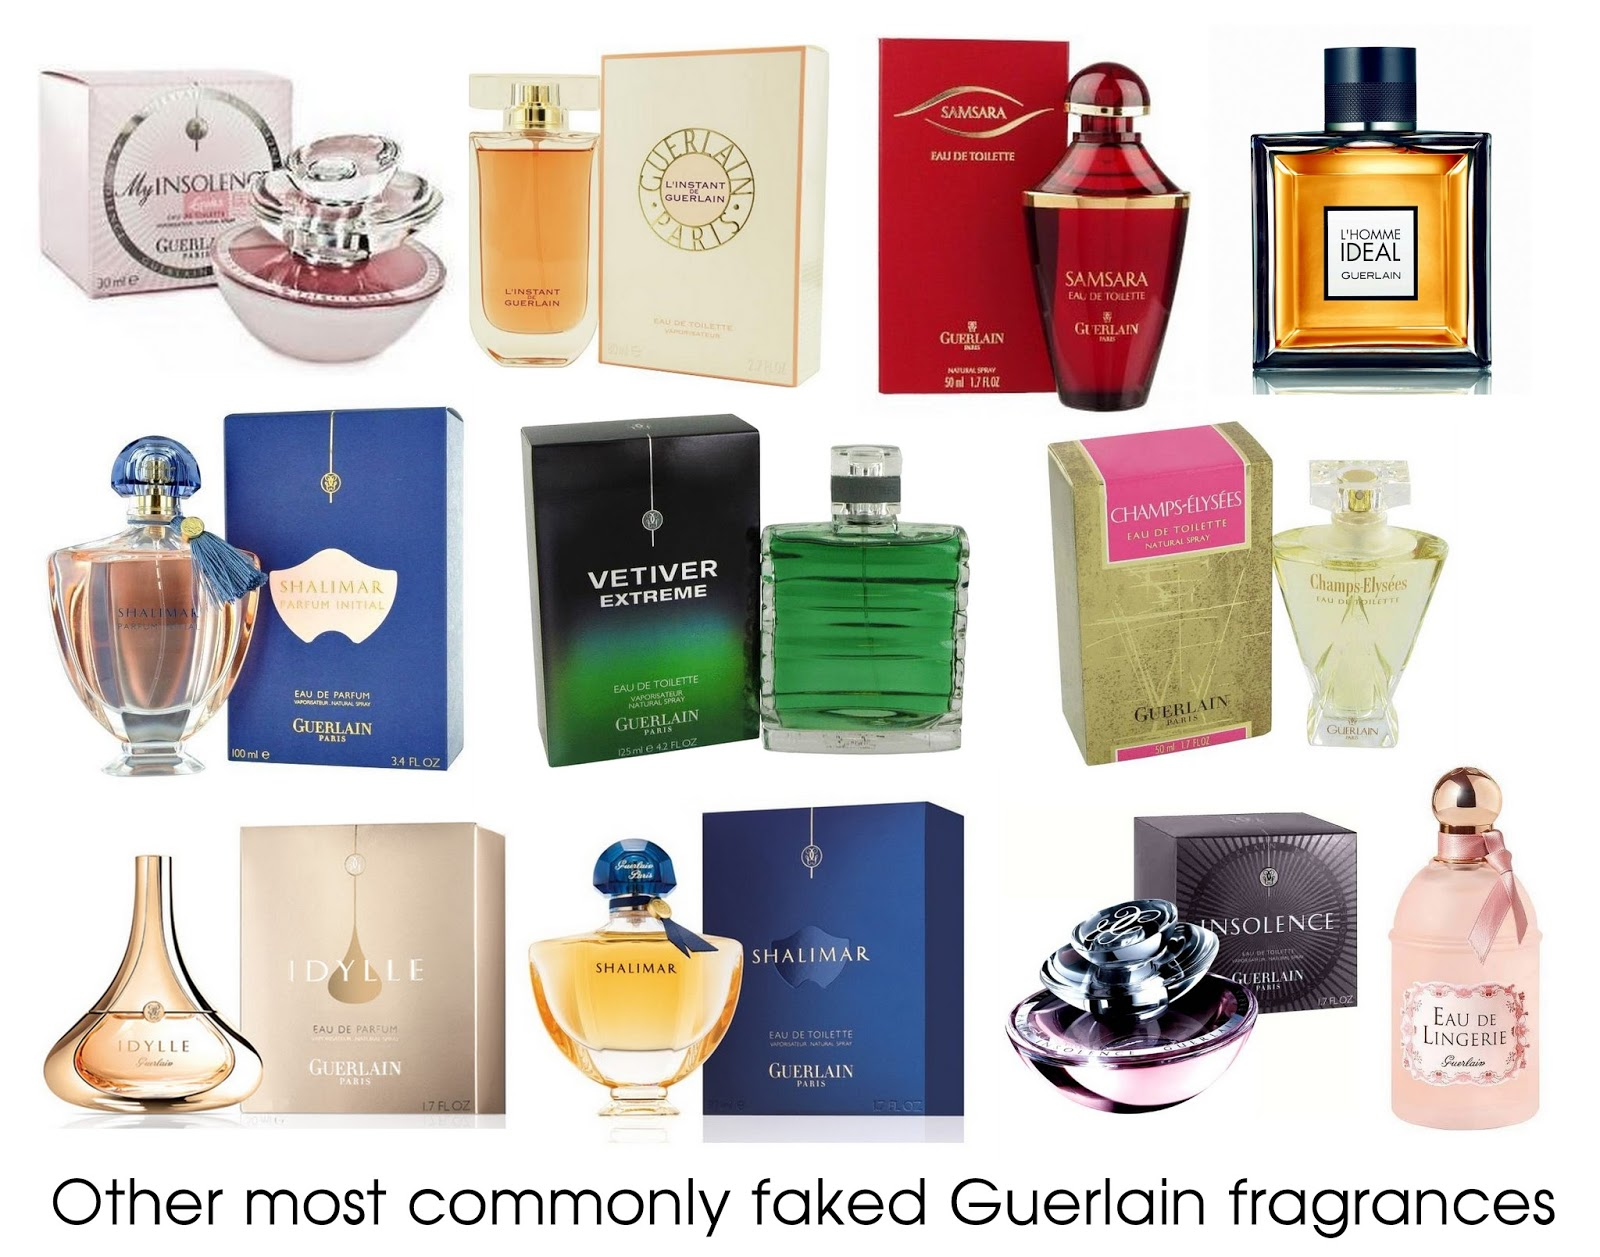 Guerlain Perfumes Beware Counterfeit Fragrances Shalimar Eau De Parfum 90ml These Are Images Taken From Different Fake Perfume Suppliers Websites